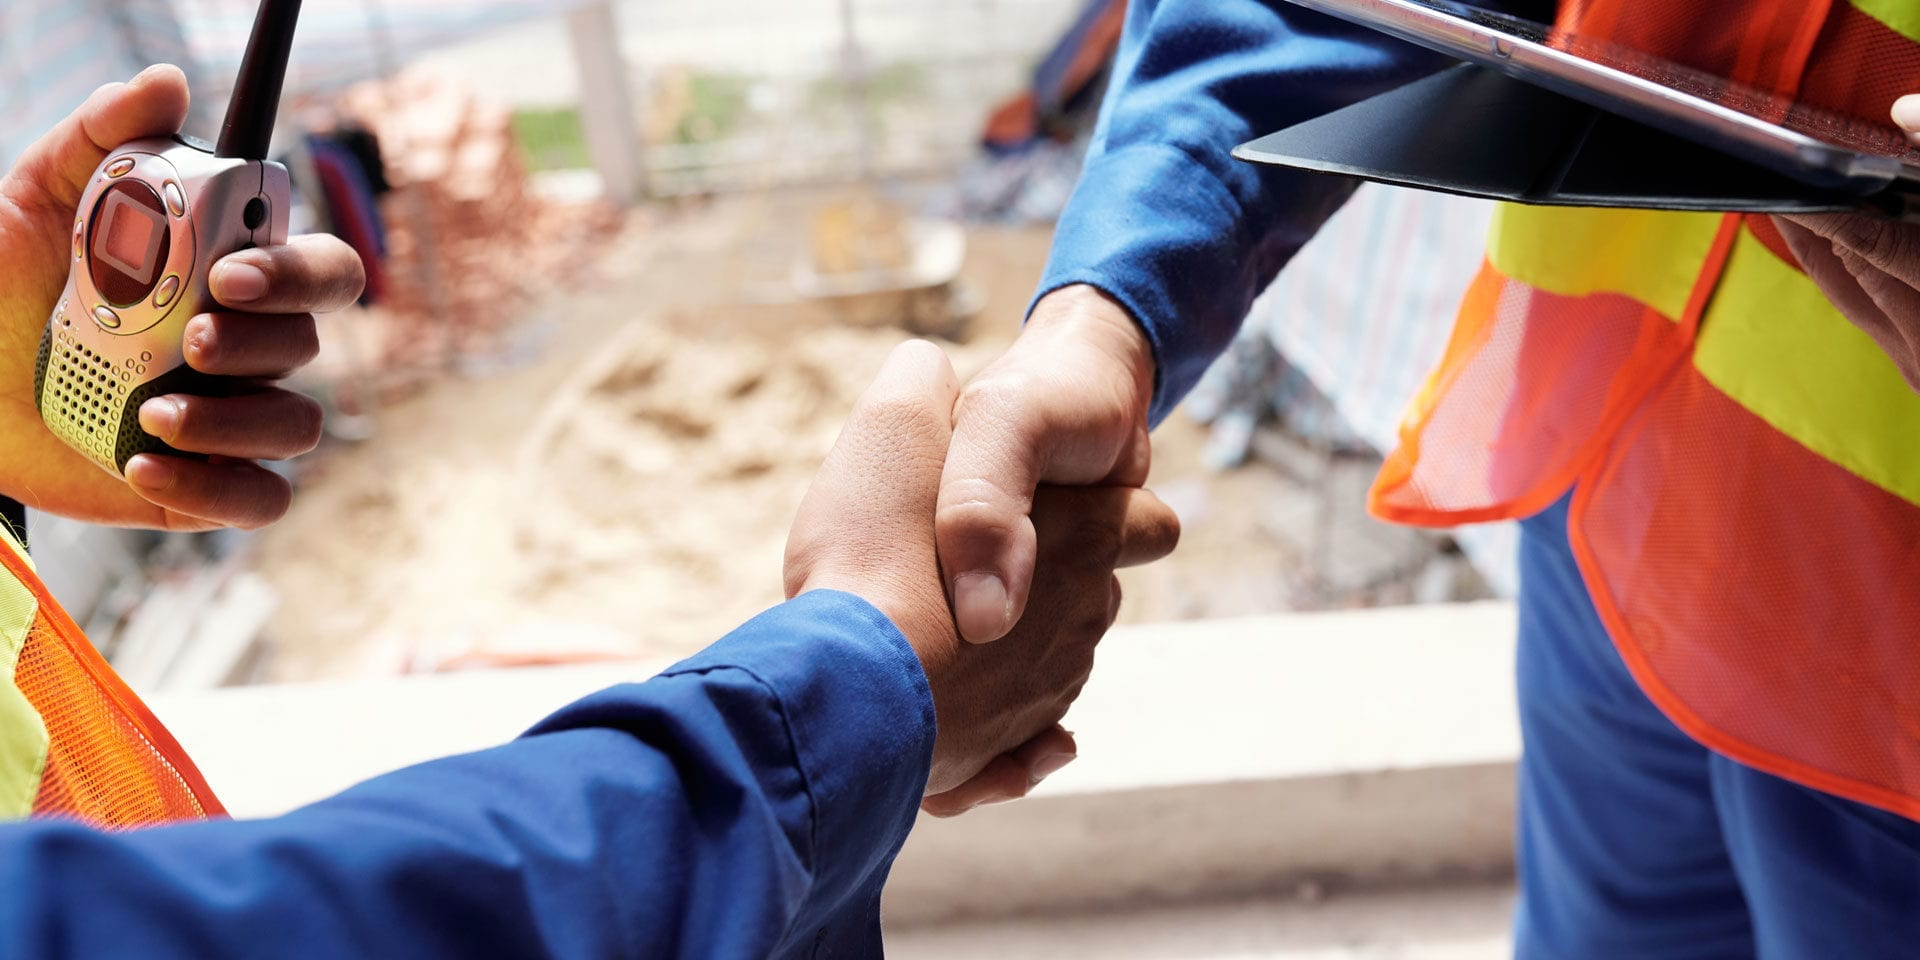 Building Construction Relationships through Recruitment